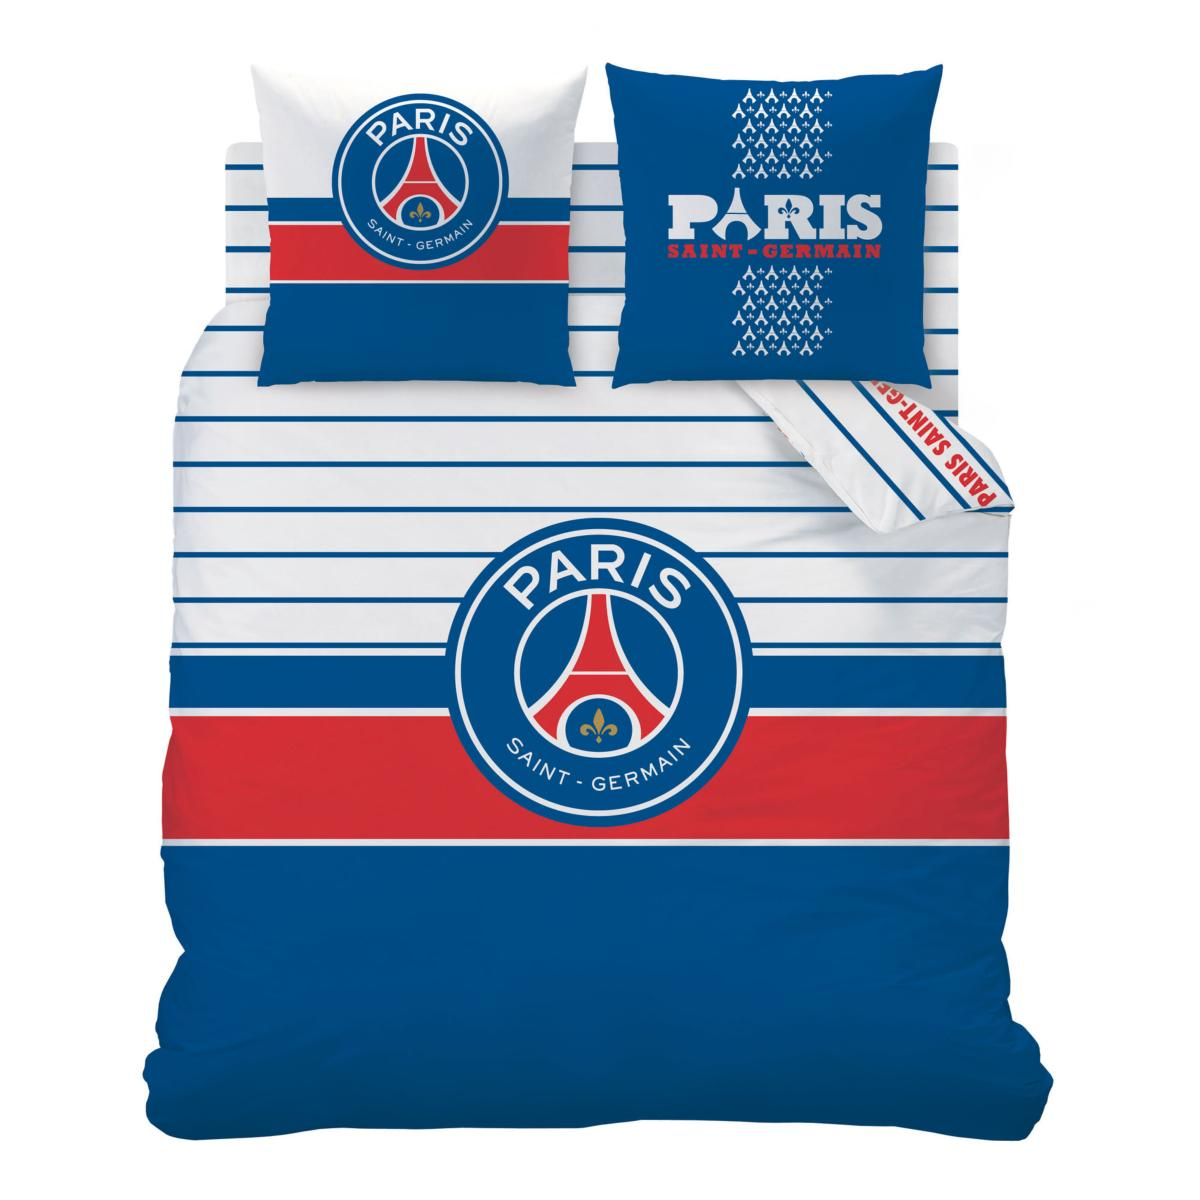 parure housse de couette psg logo paris saint germain j k markets. Black Bedroom Furniture Sets. Home Design Ideas